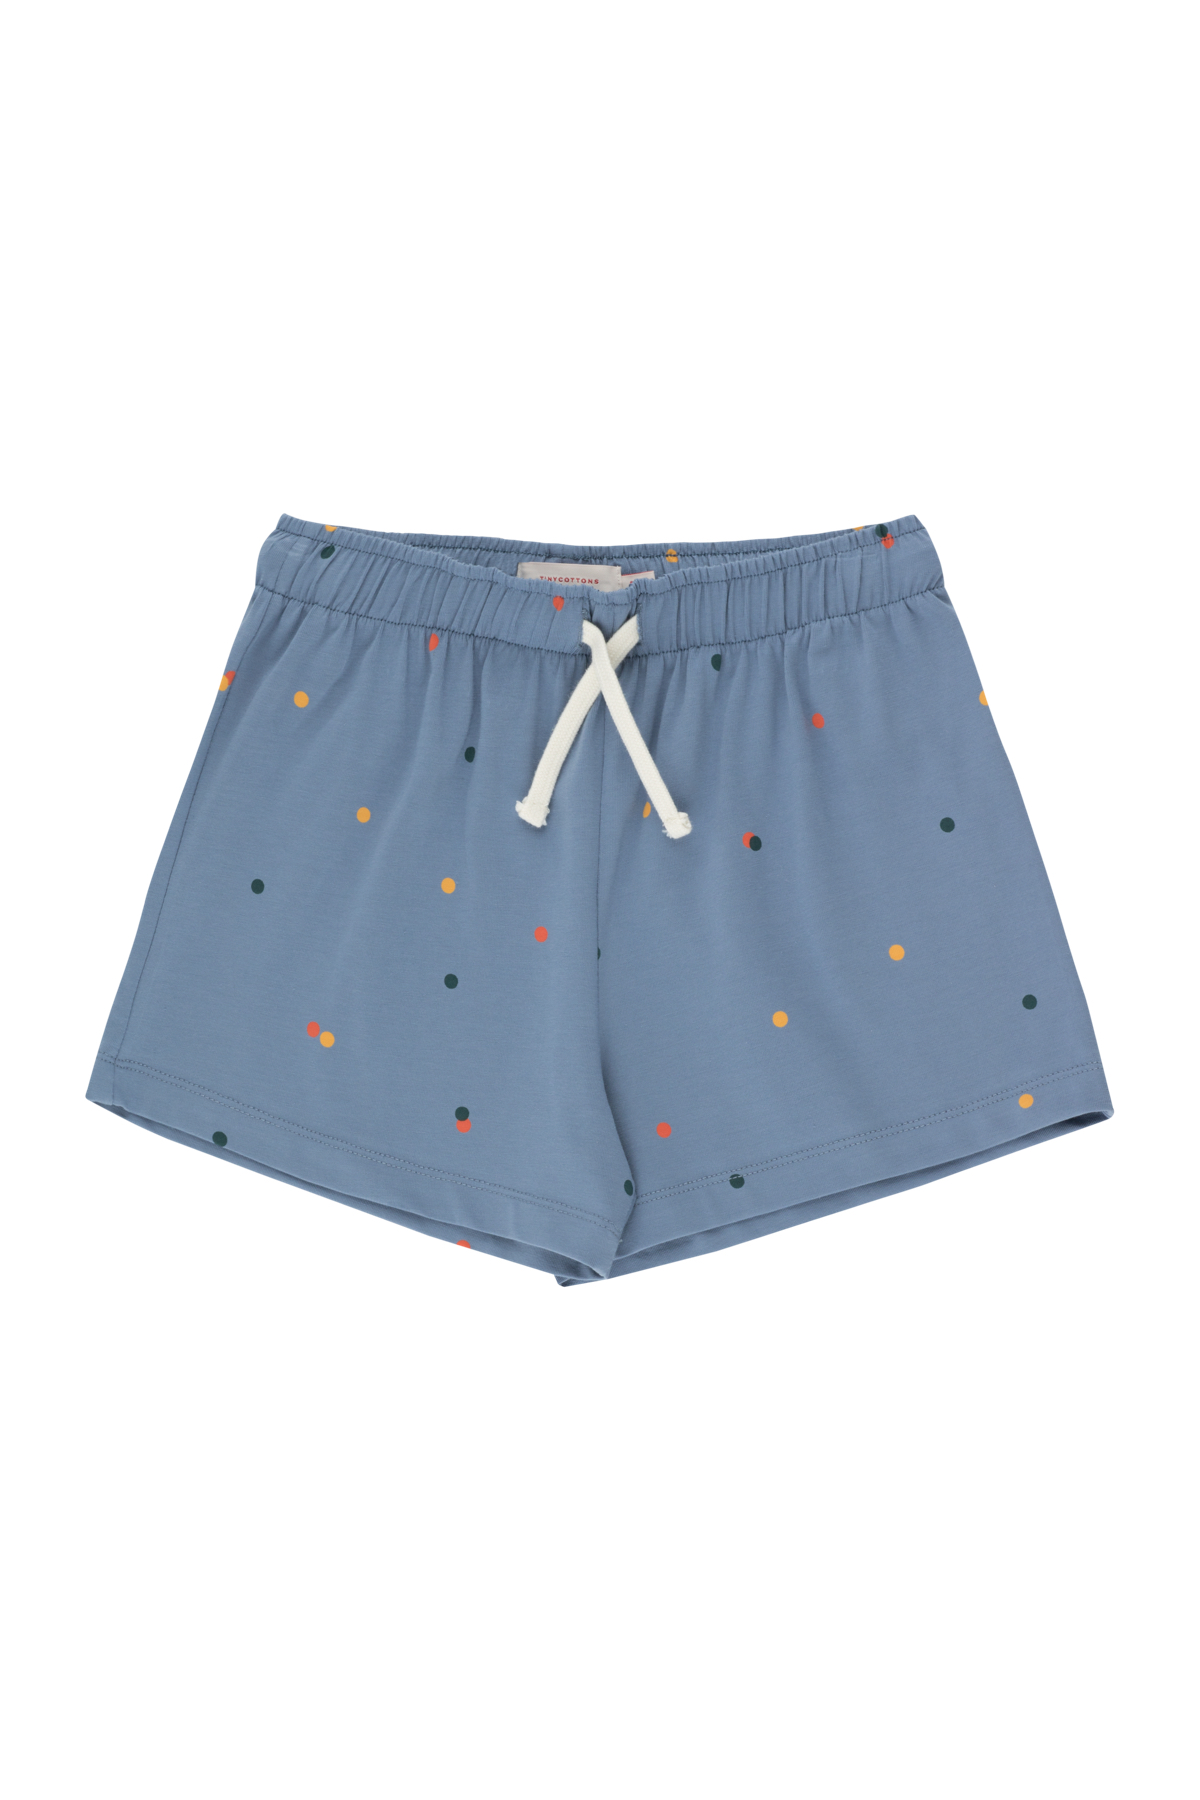 tinycottons ice cream dots shorts grey blue